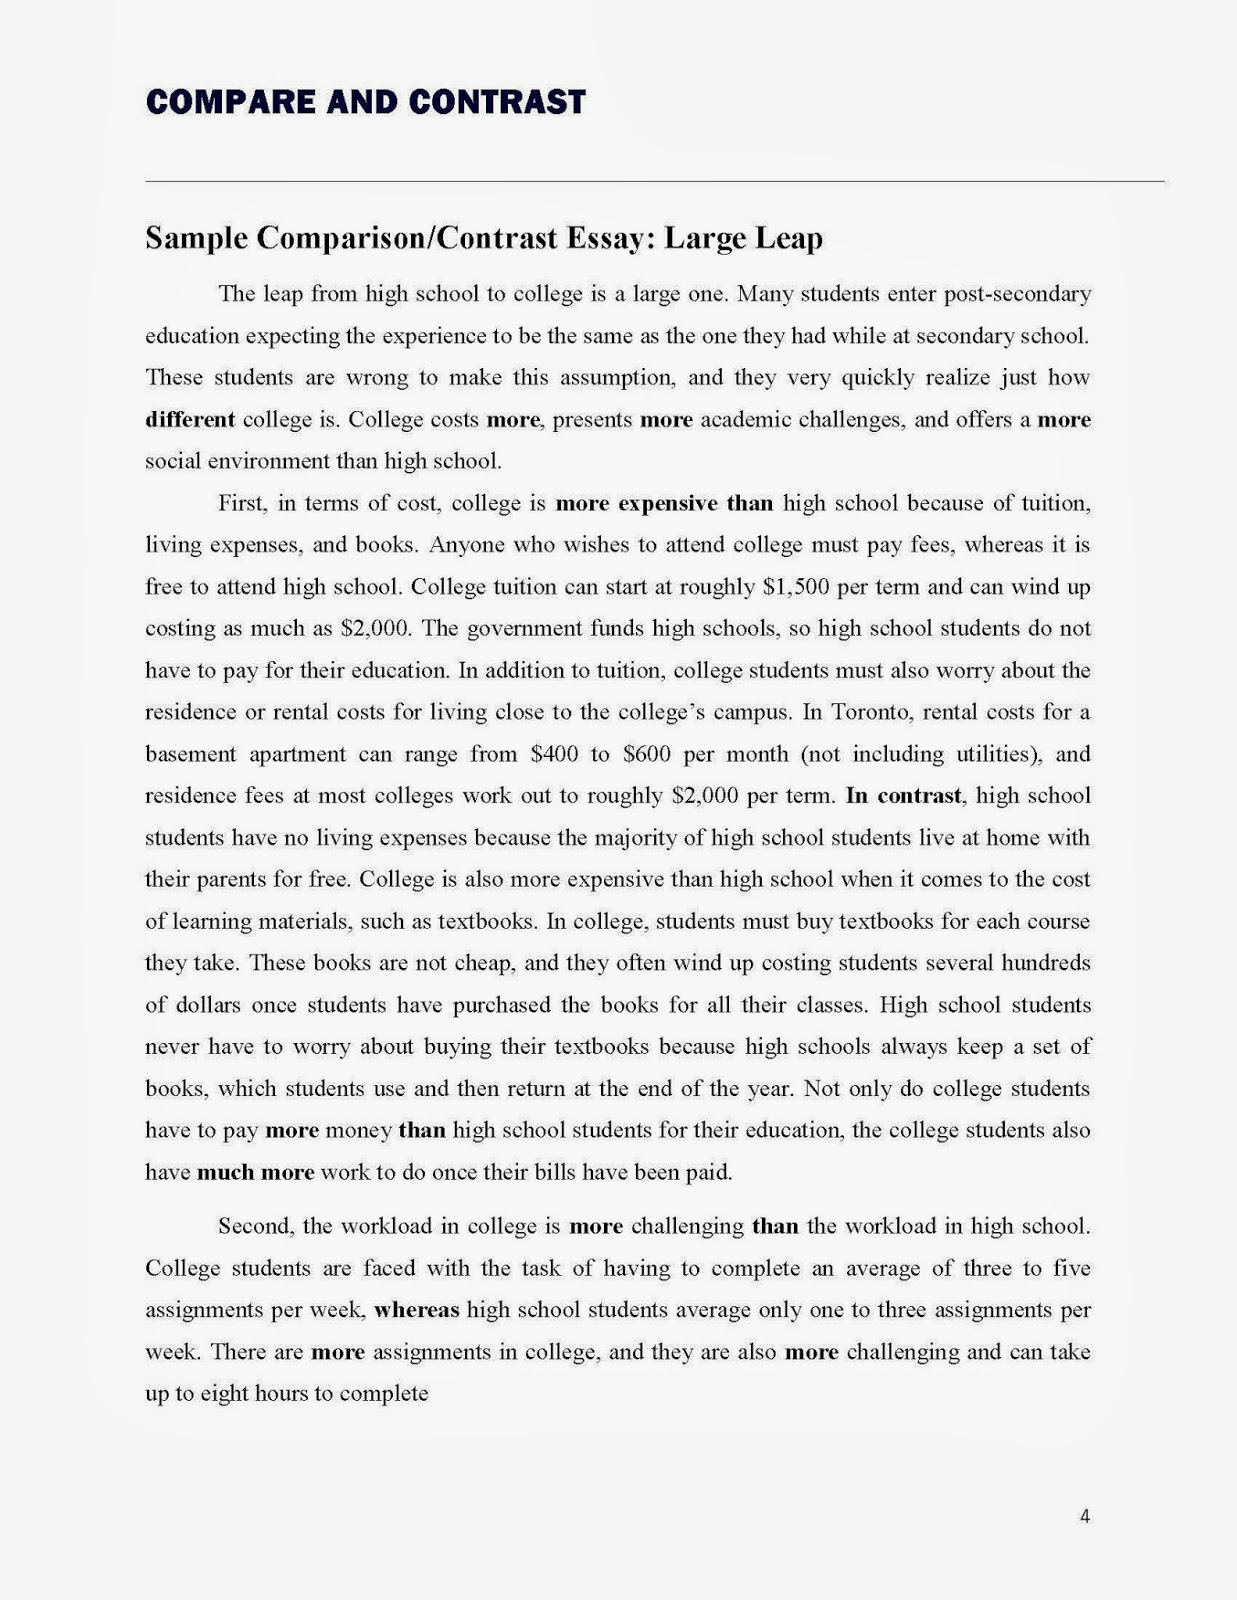 How to Write a Compare and Contrast Essay Outline: A Point-By-Point Organization